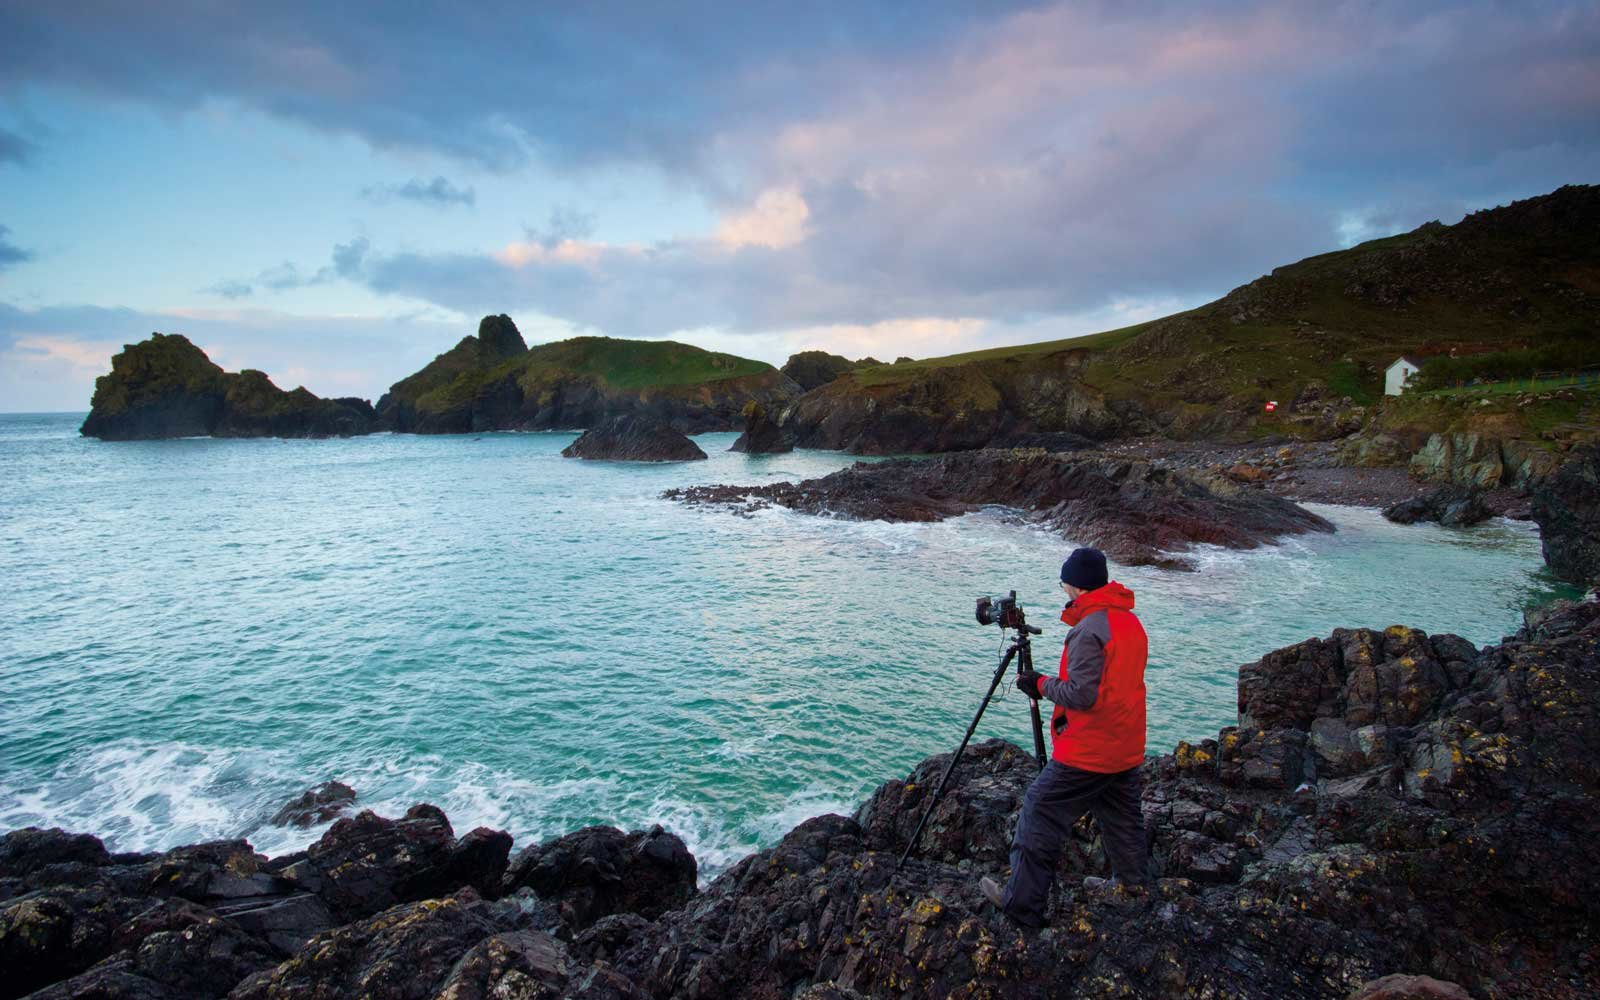 Photographers Share How They Captured the Perfect Shot